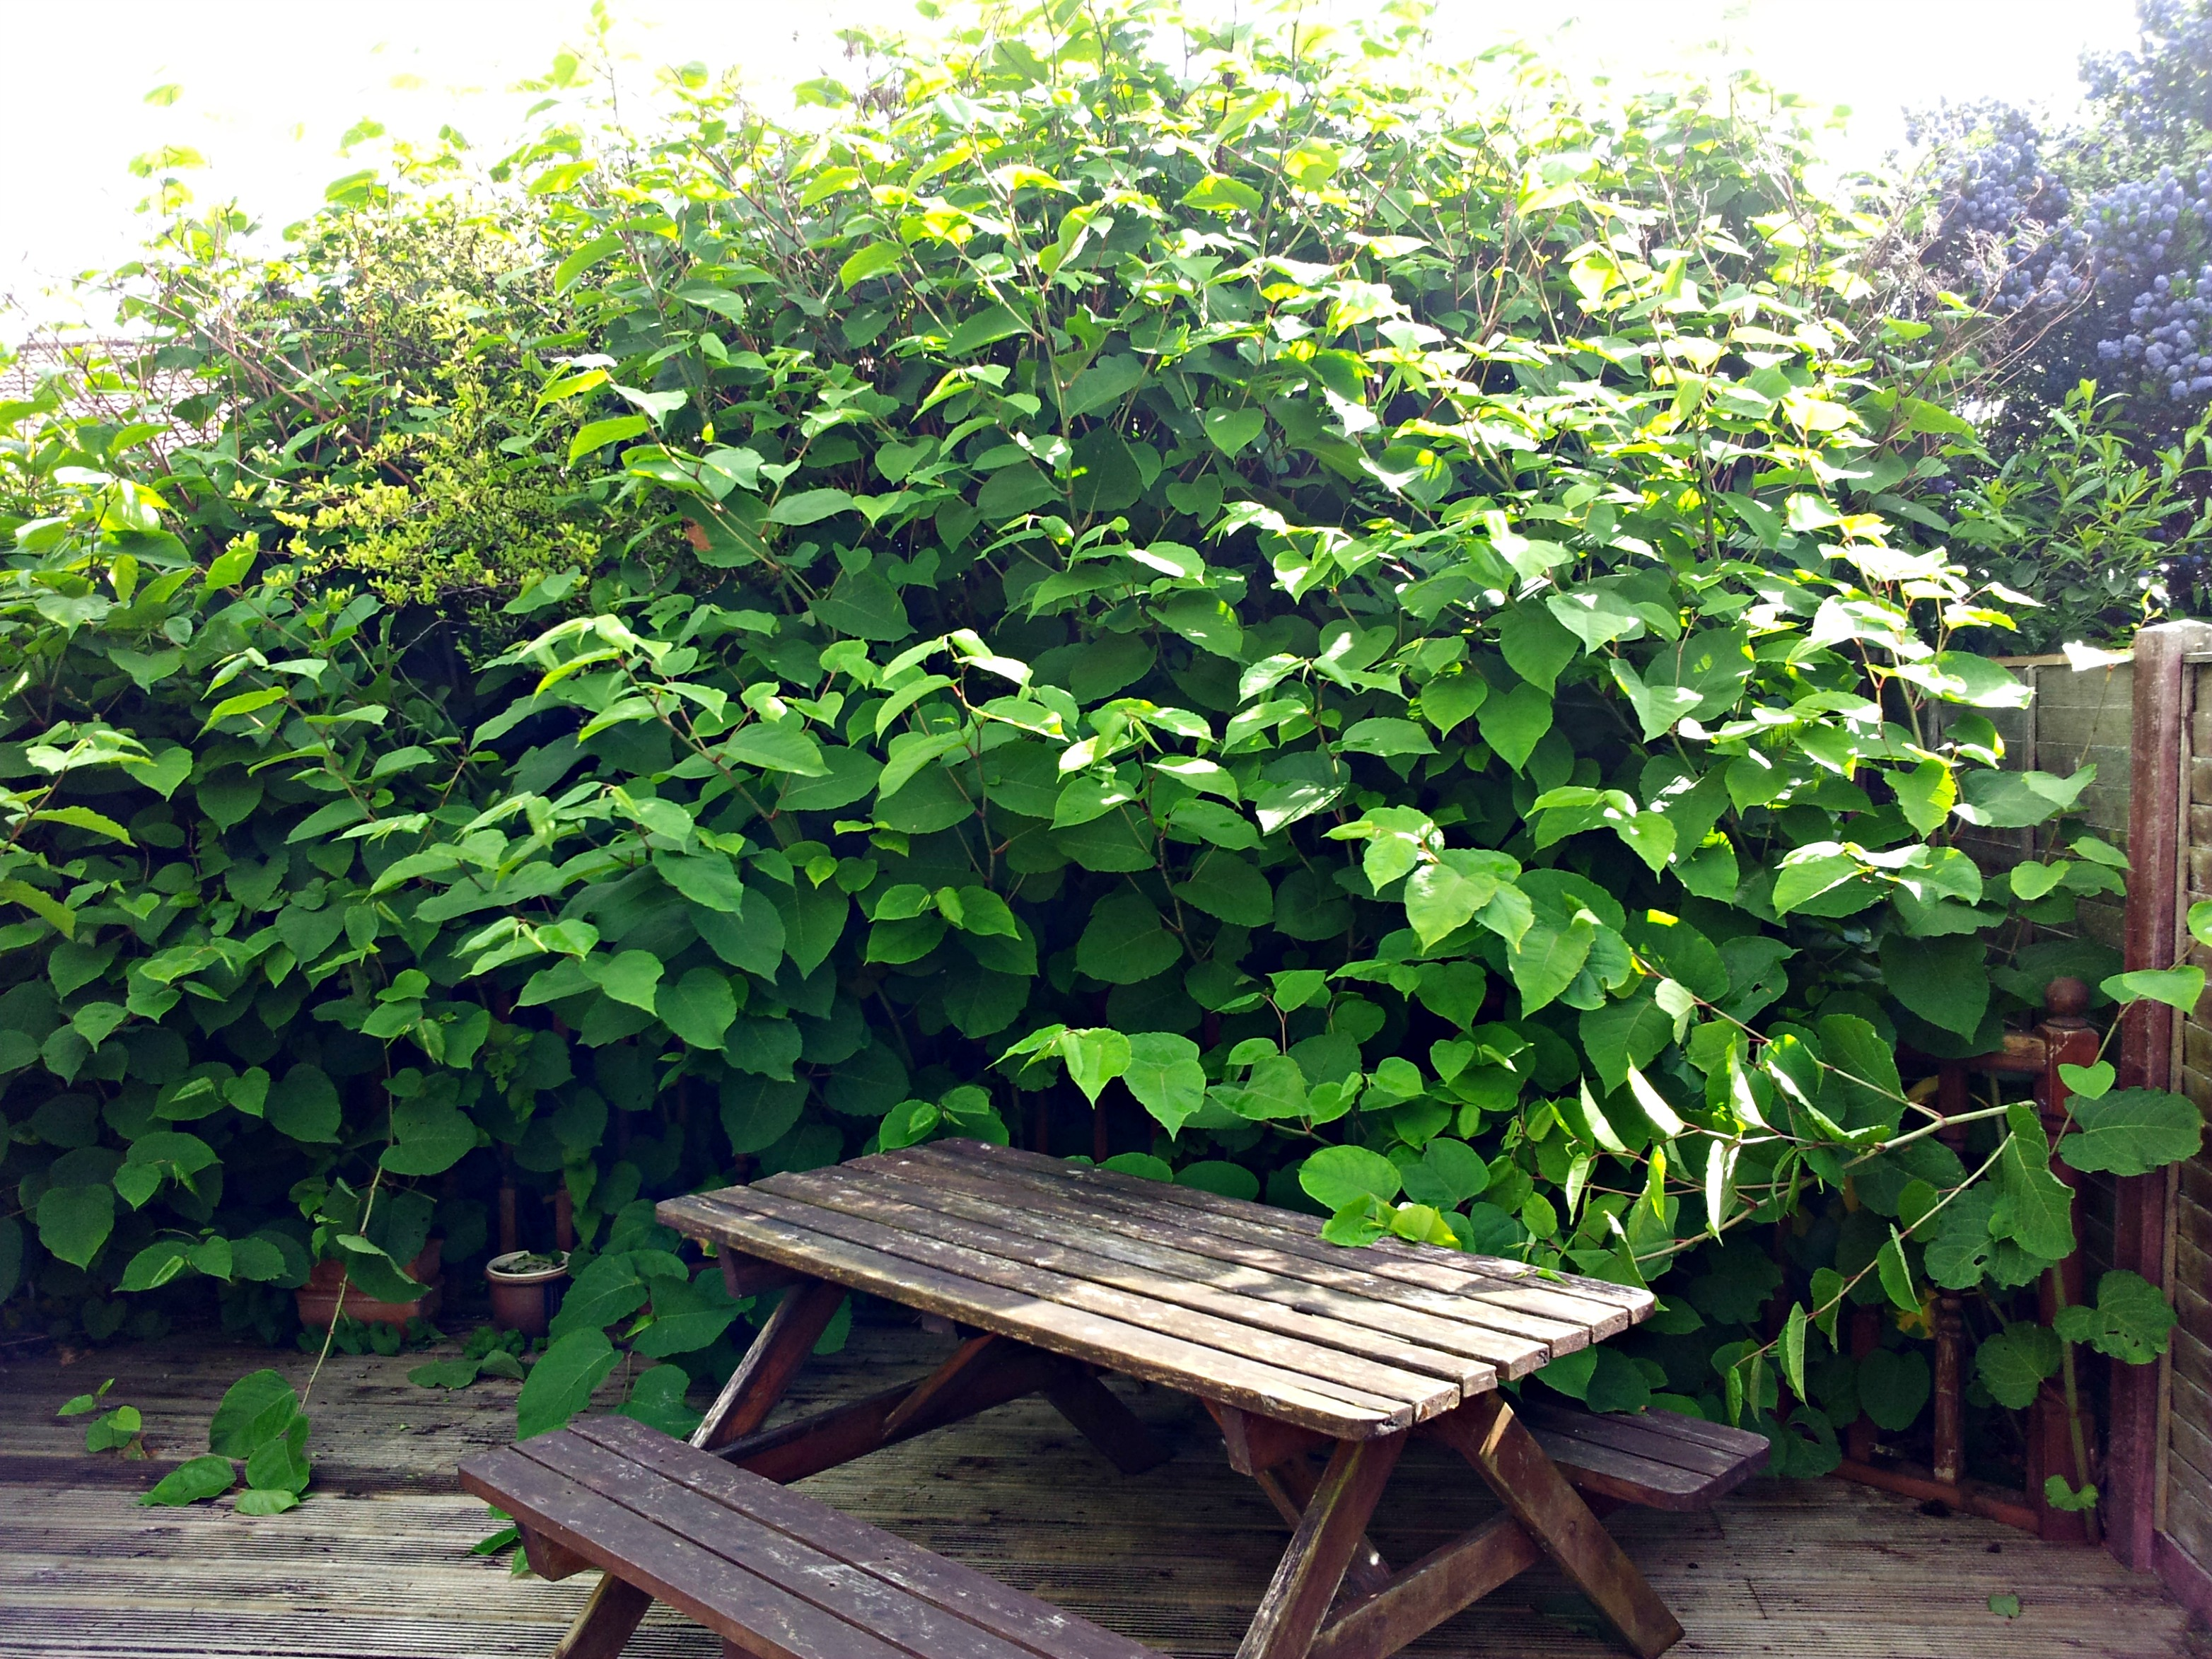 knotweed ecology and overwhelmingly lacking solution